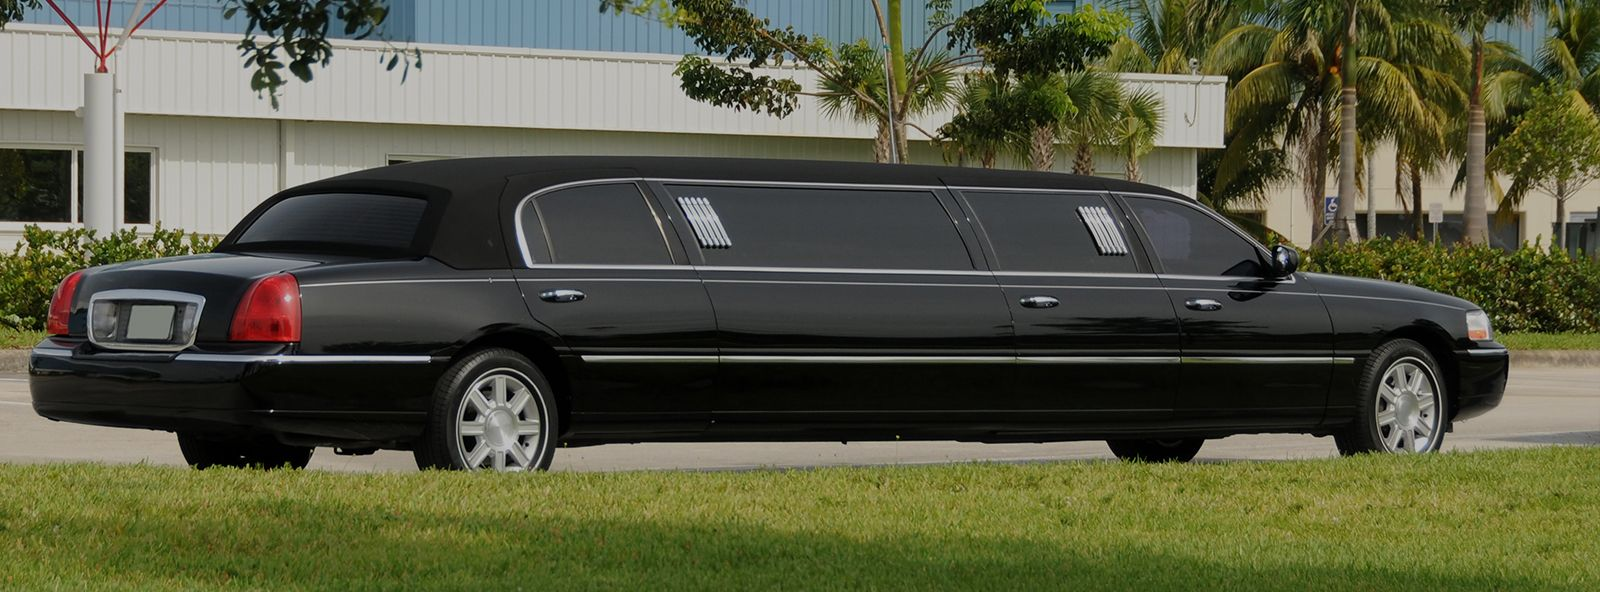 Limousine Service with Affordable Transportations